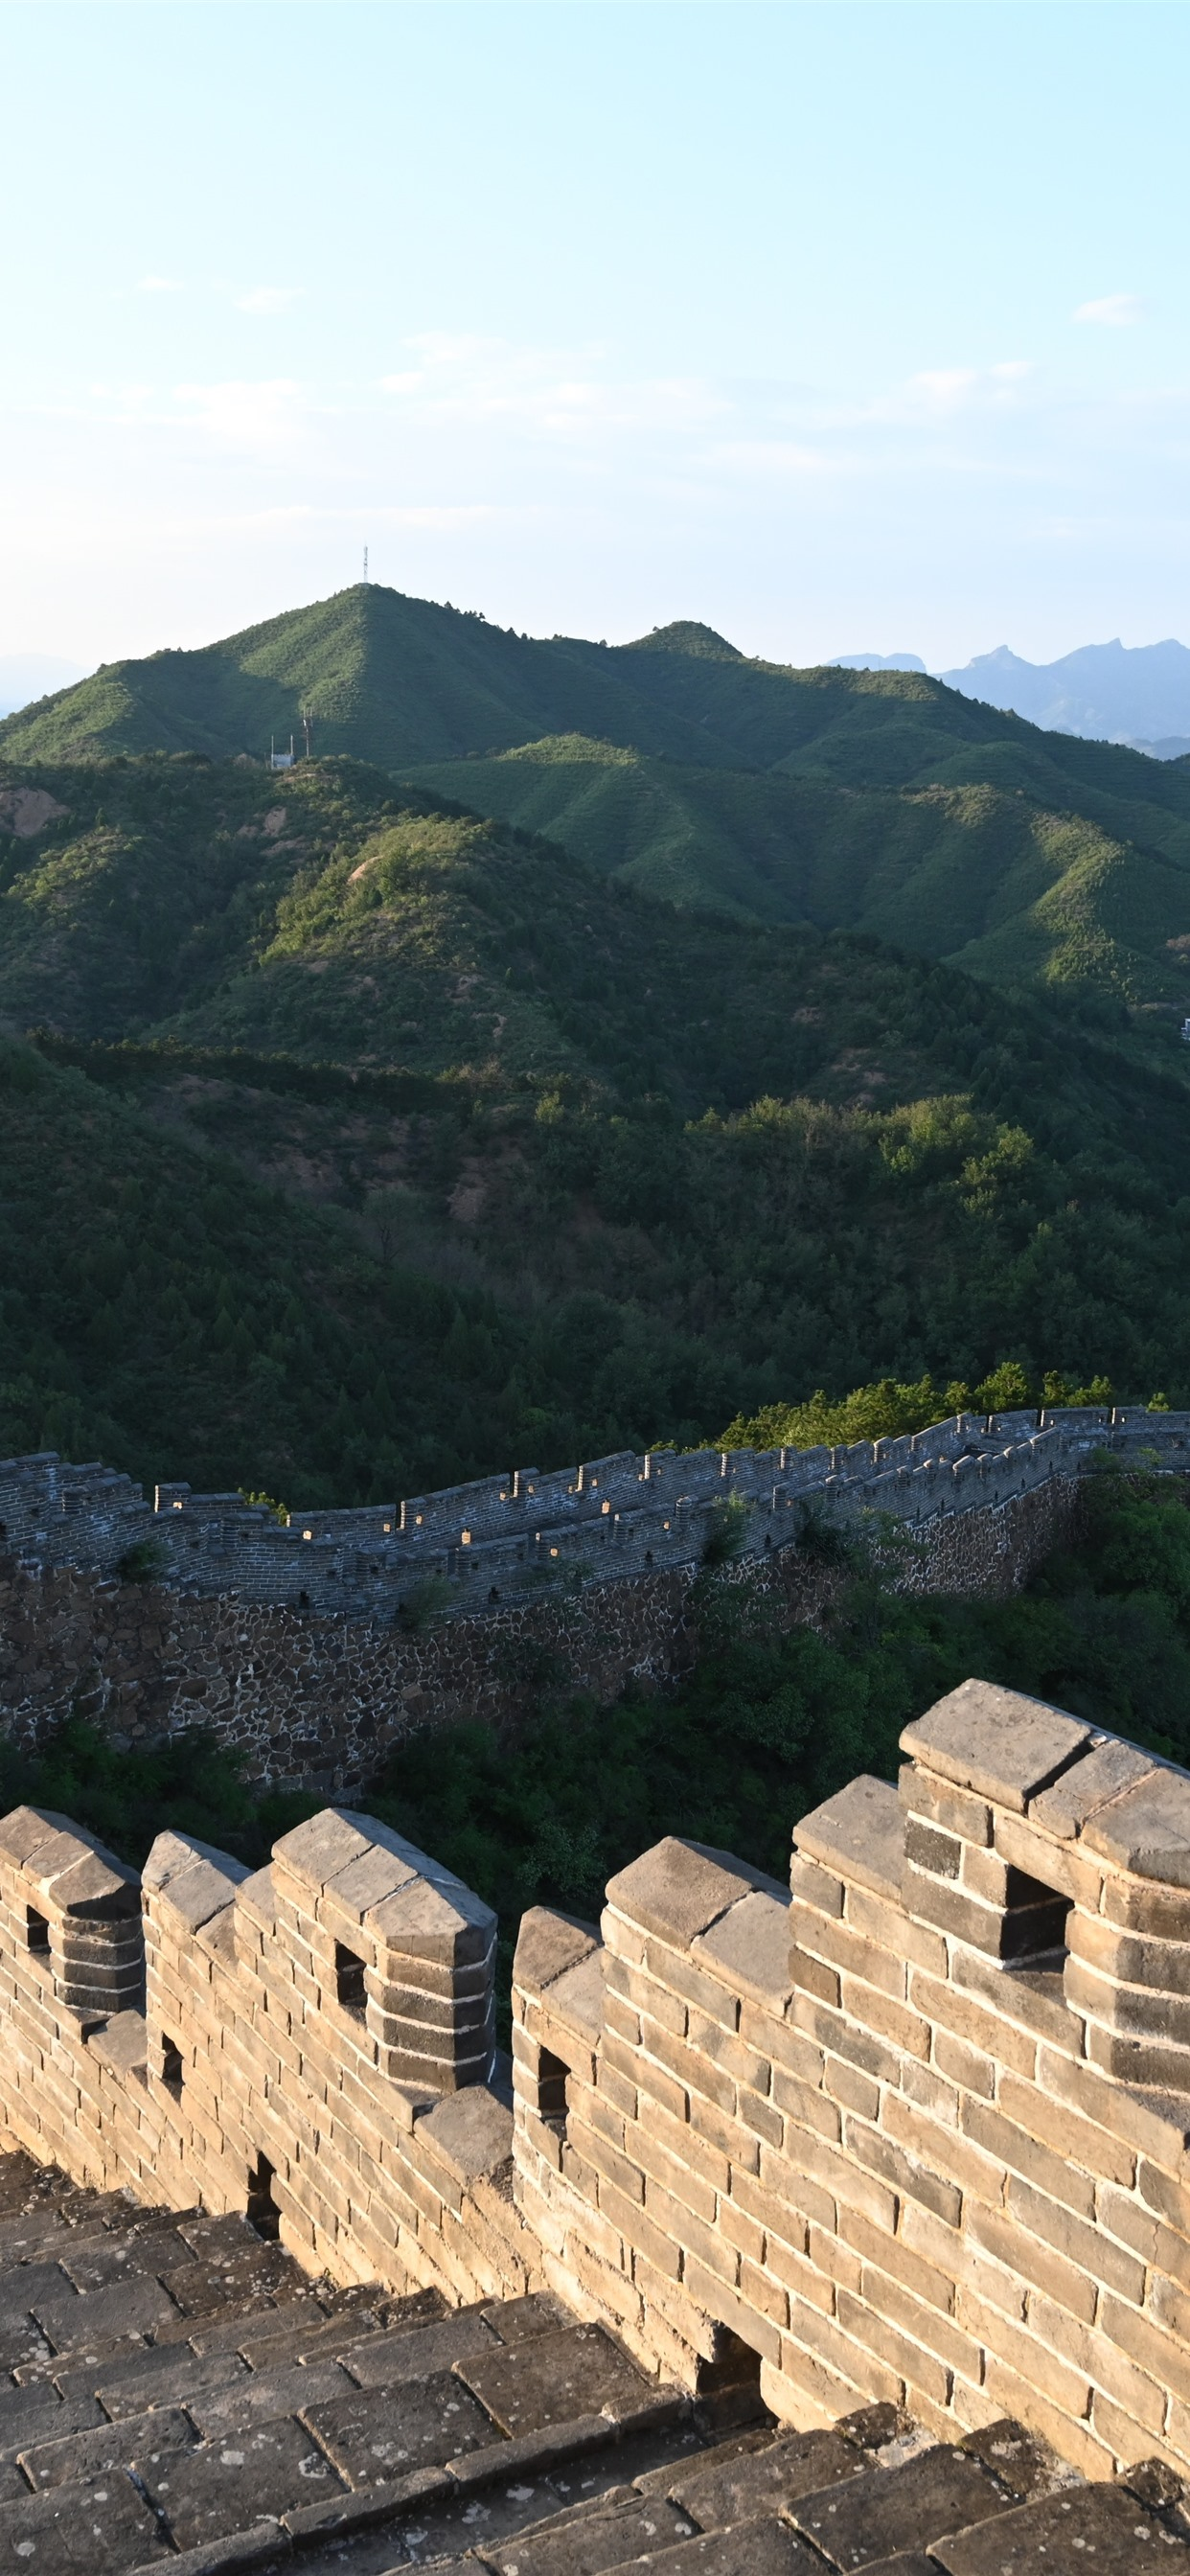 Chinese Travel Place Great Wall Steps Ruins Mountains